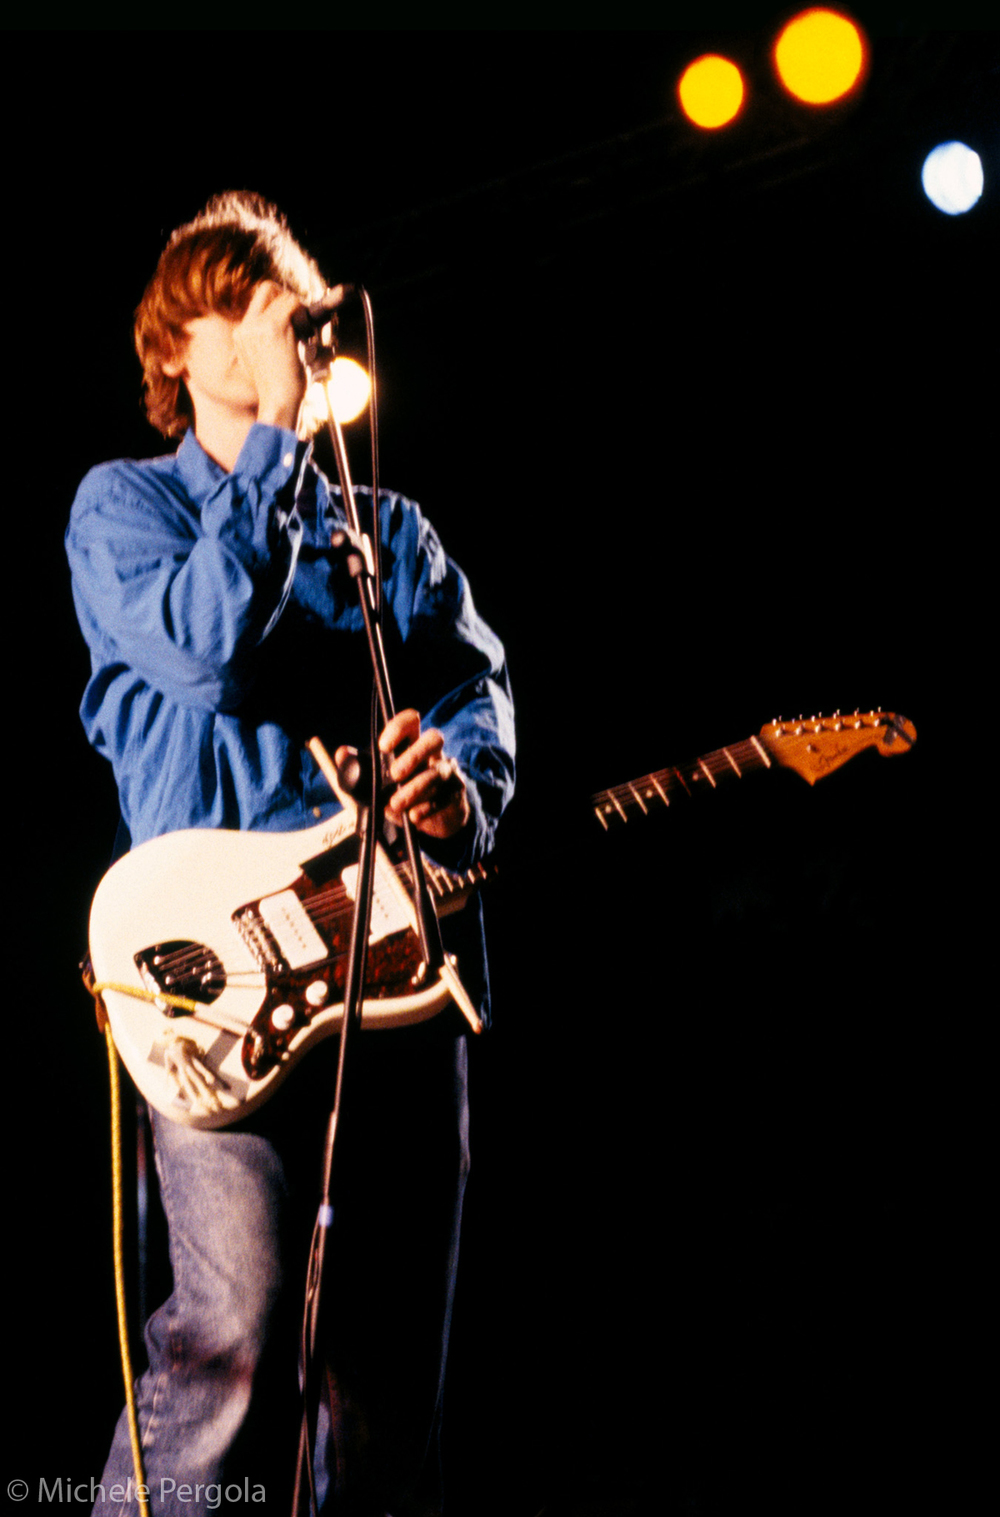 Thurston Moore (Sonic Youth) - Ostia Antica (Rome, Italy) June 18, 2001